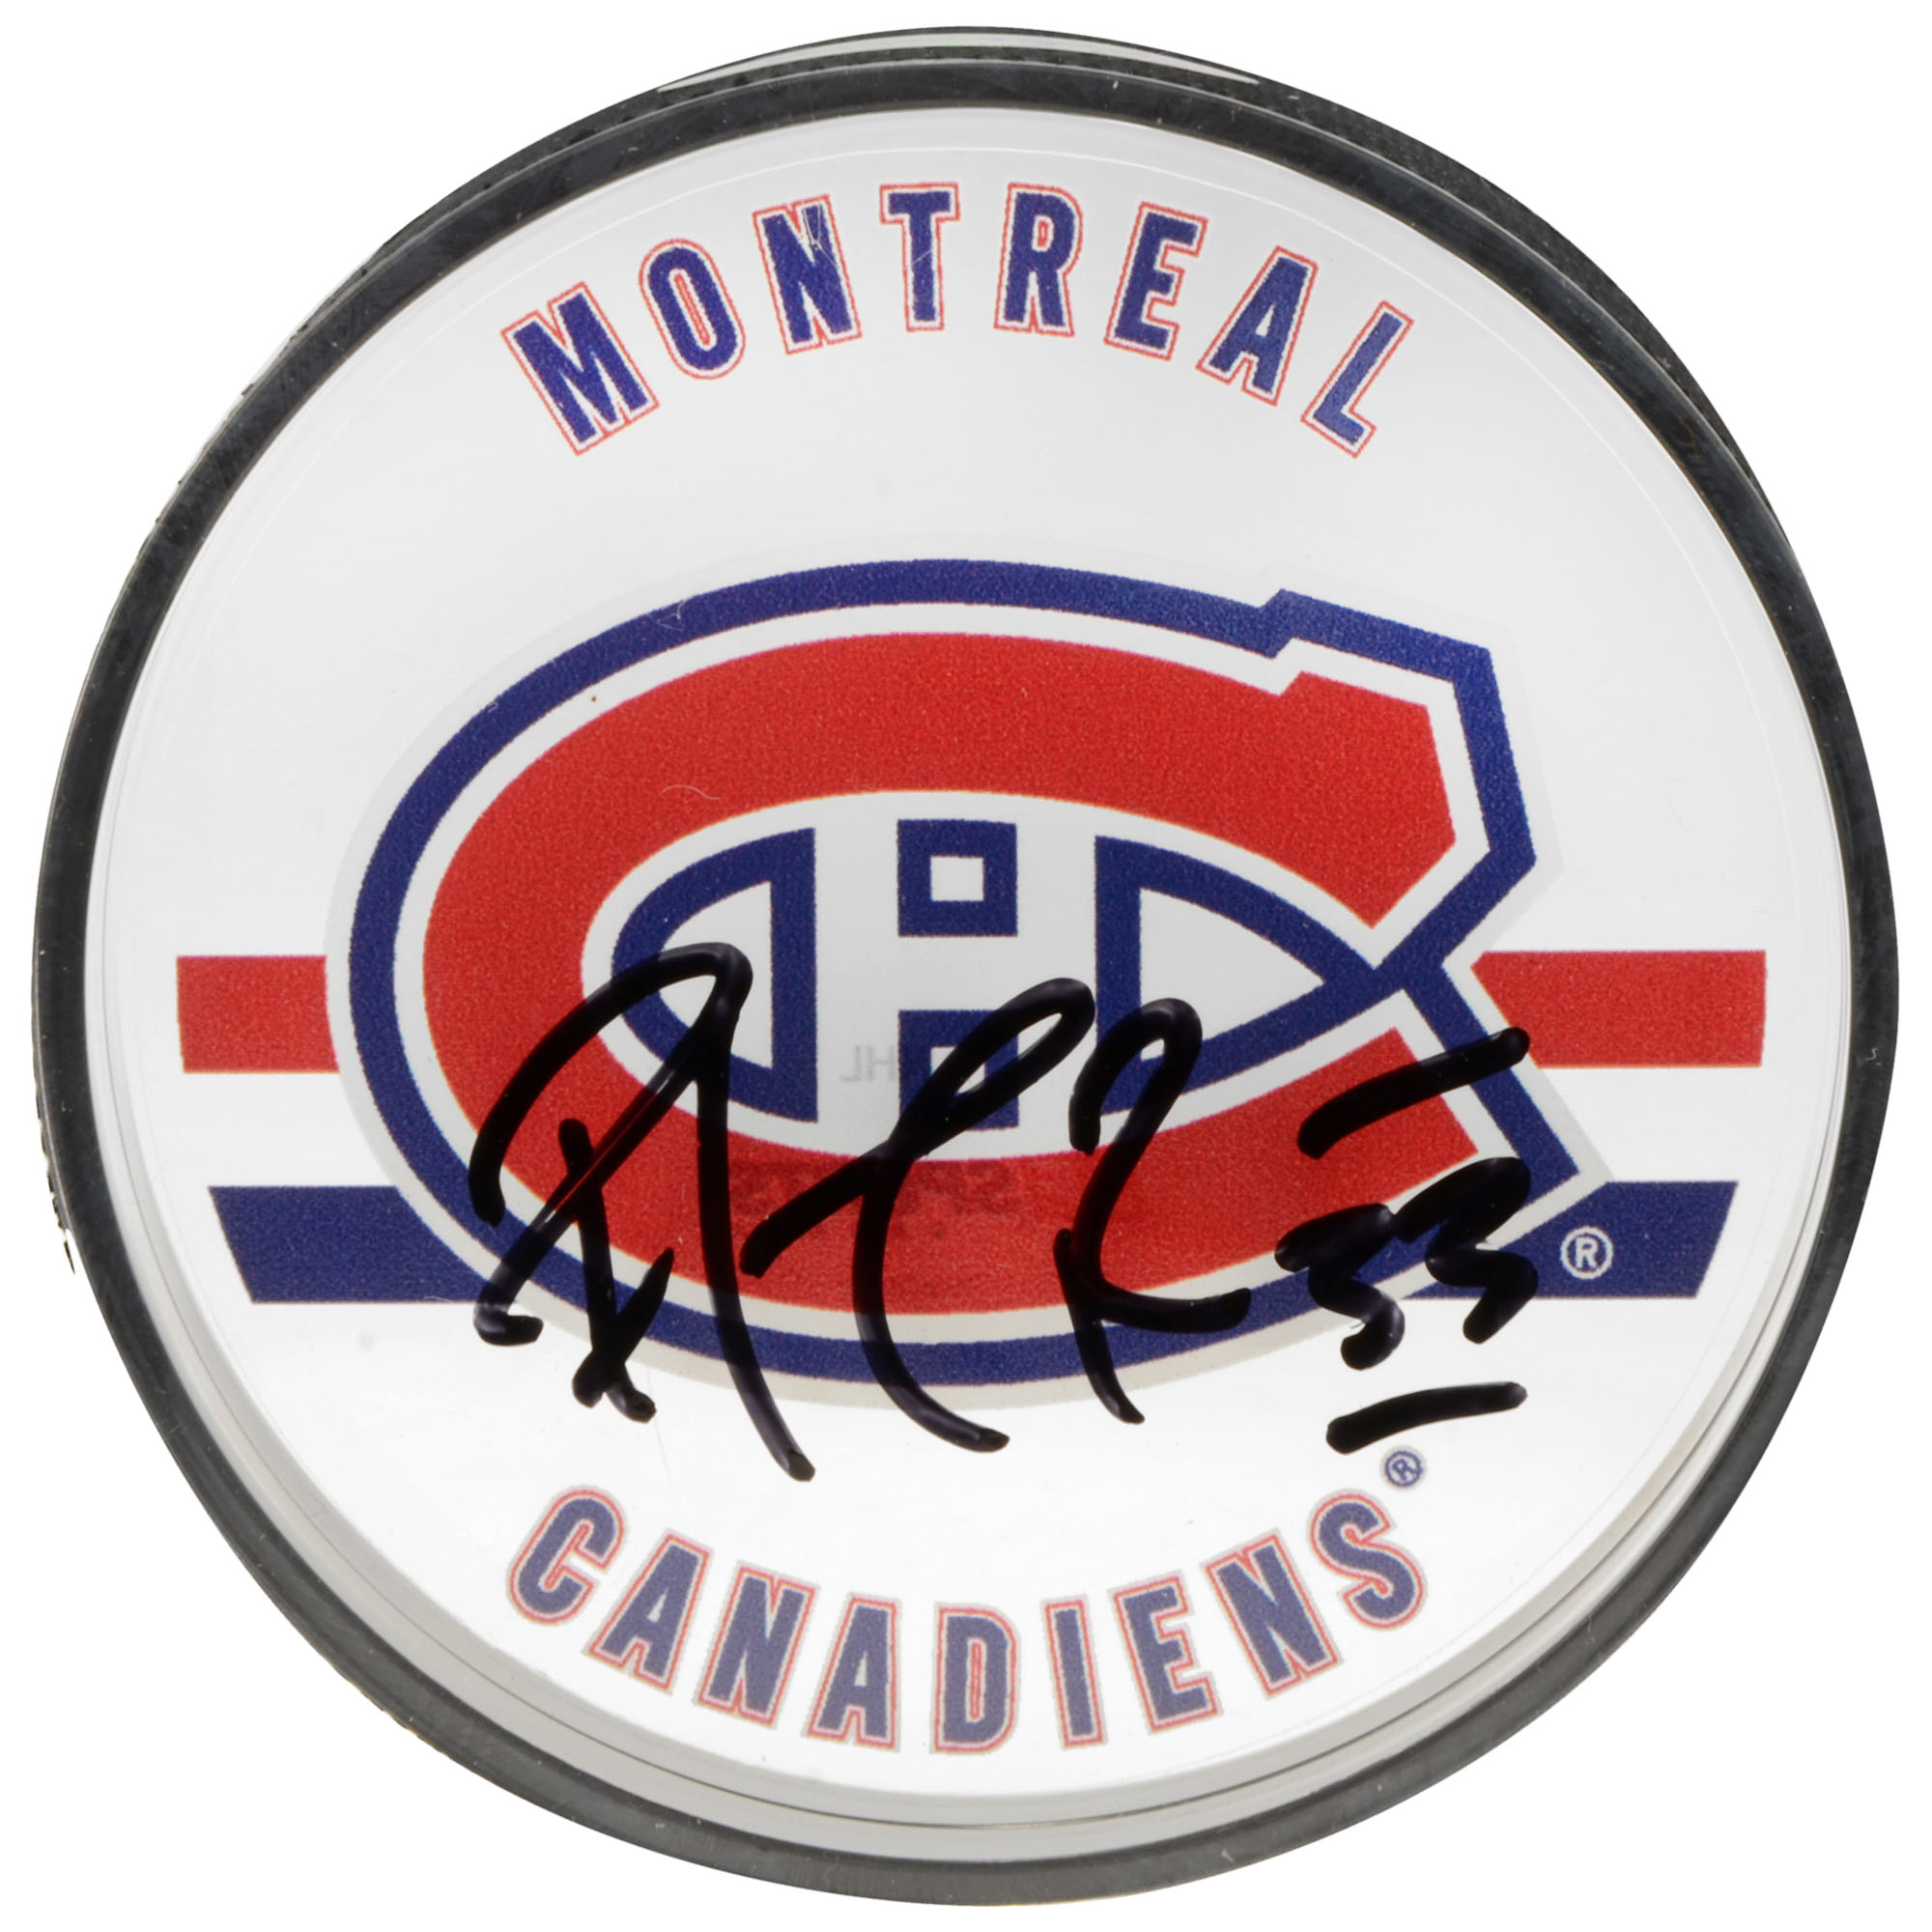 Patrick Roy Montreal Canadiens Autographed Acrylic Hockey Puck- Upper Deck - Fanatics Authentic Certified